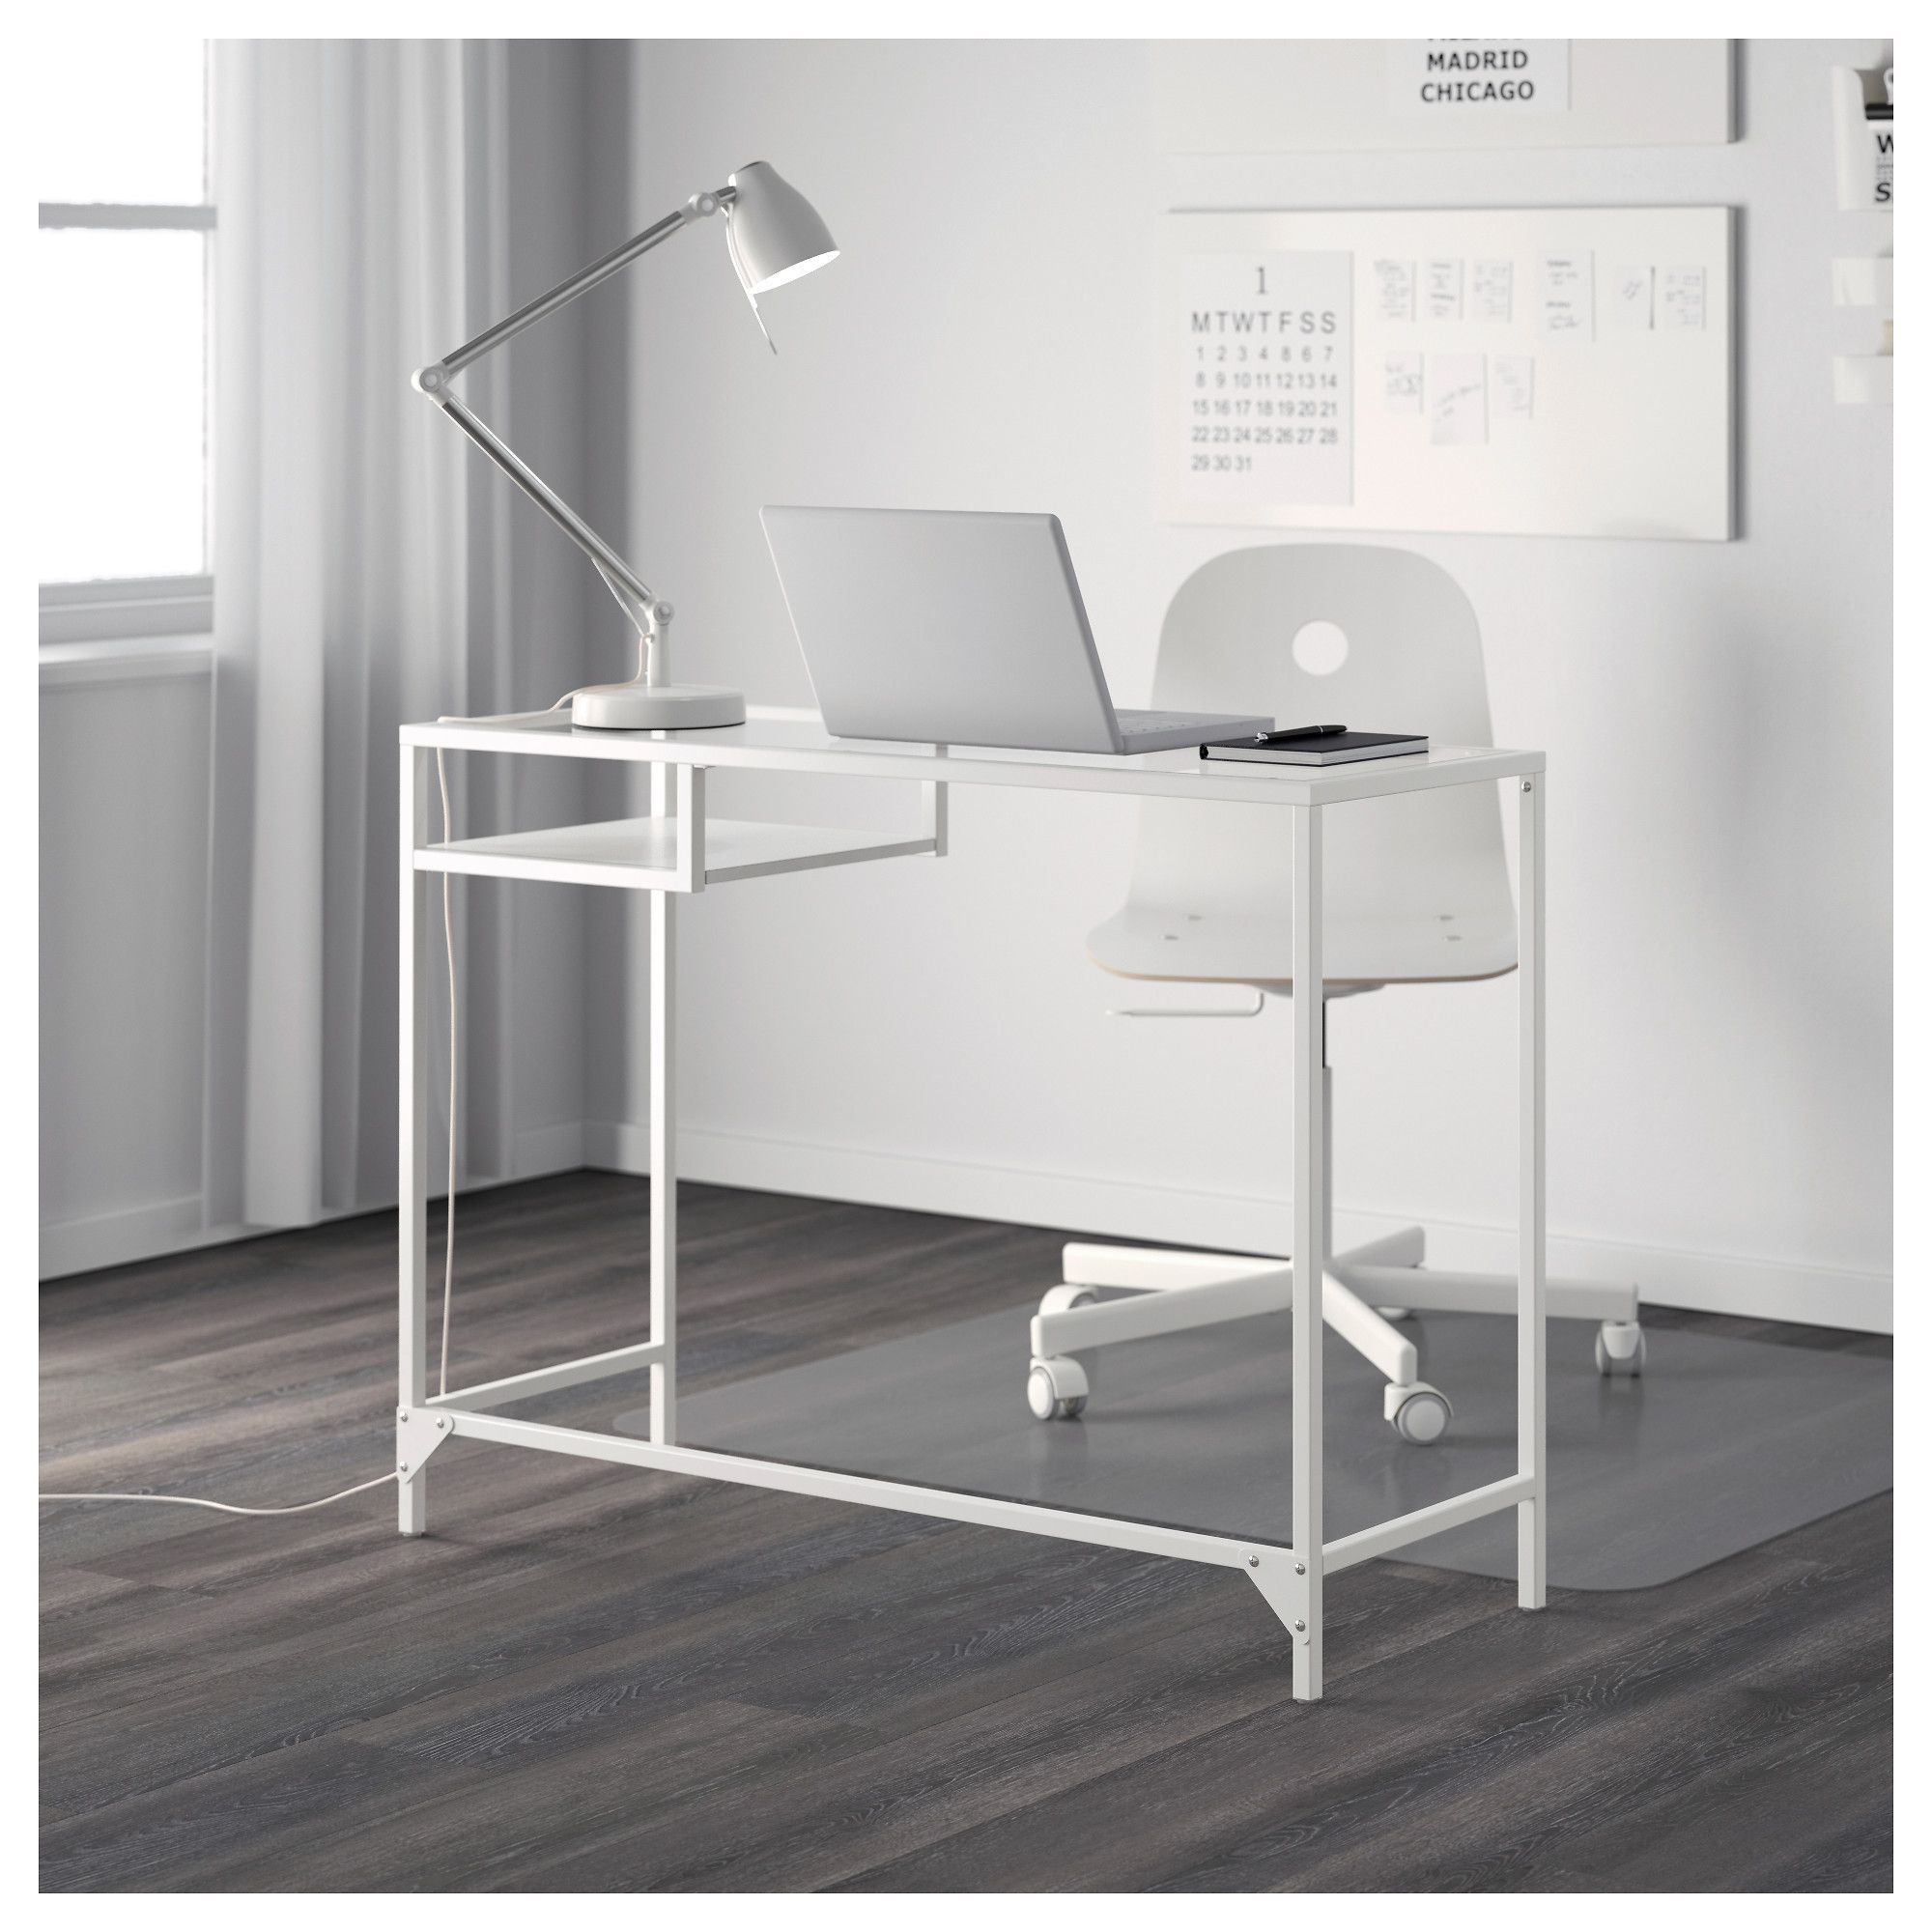 Fresh Home Furnishing Ideas And Affordable Furniture Laptop Table Home Office Chairs Ikea Laptop Table